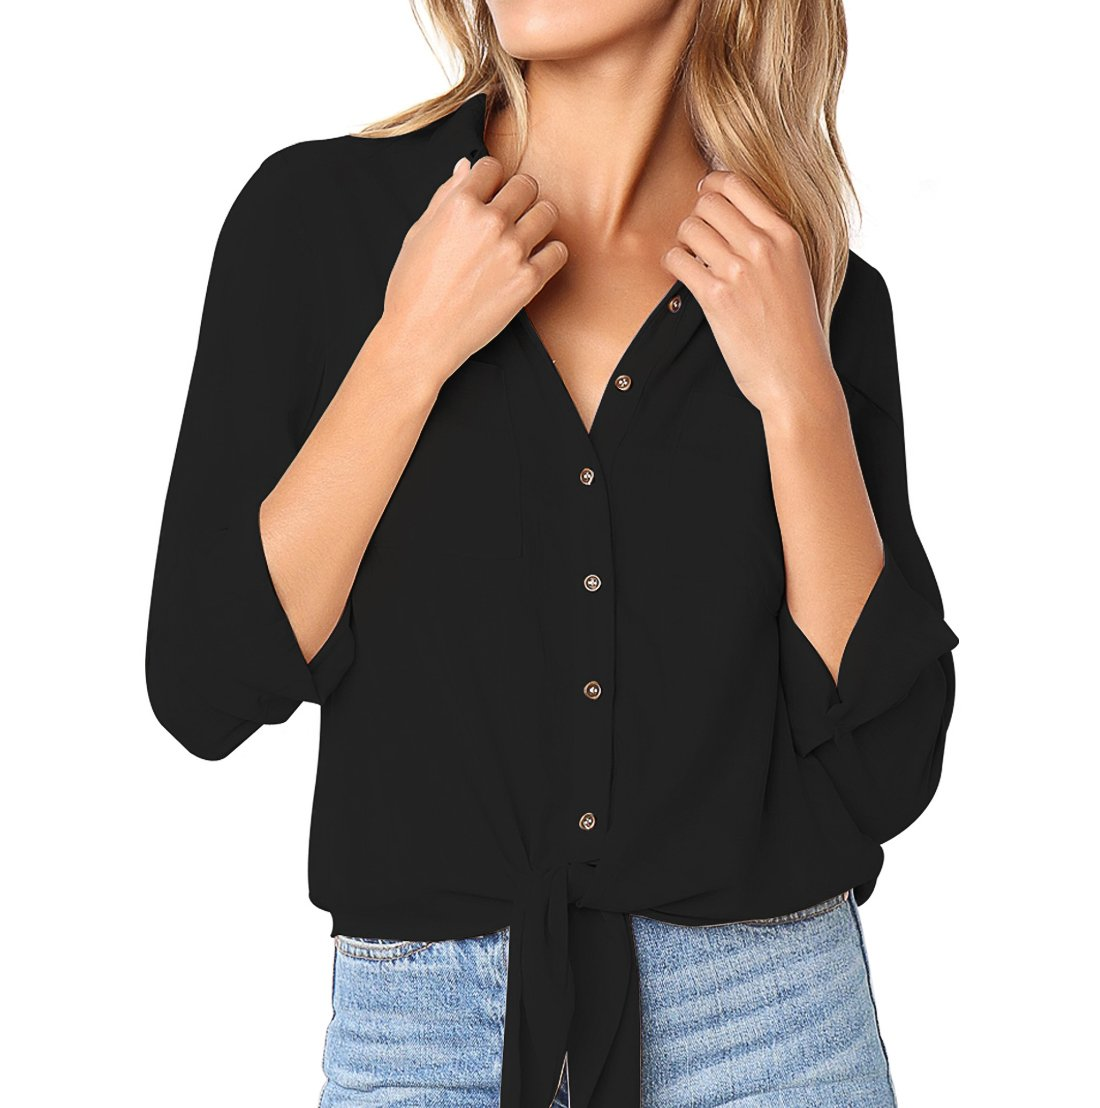 FCZ Button Down Blouse Shirts for Women Long Sleeve Tie Front Knot Casual Tops with Chest Pockets Black XL